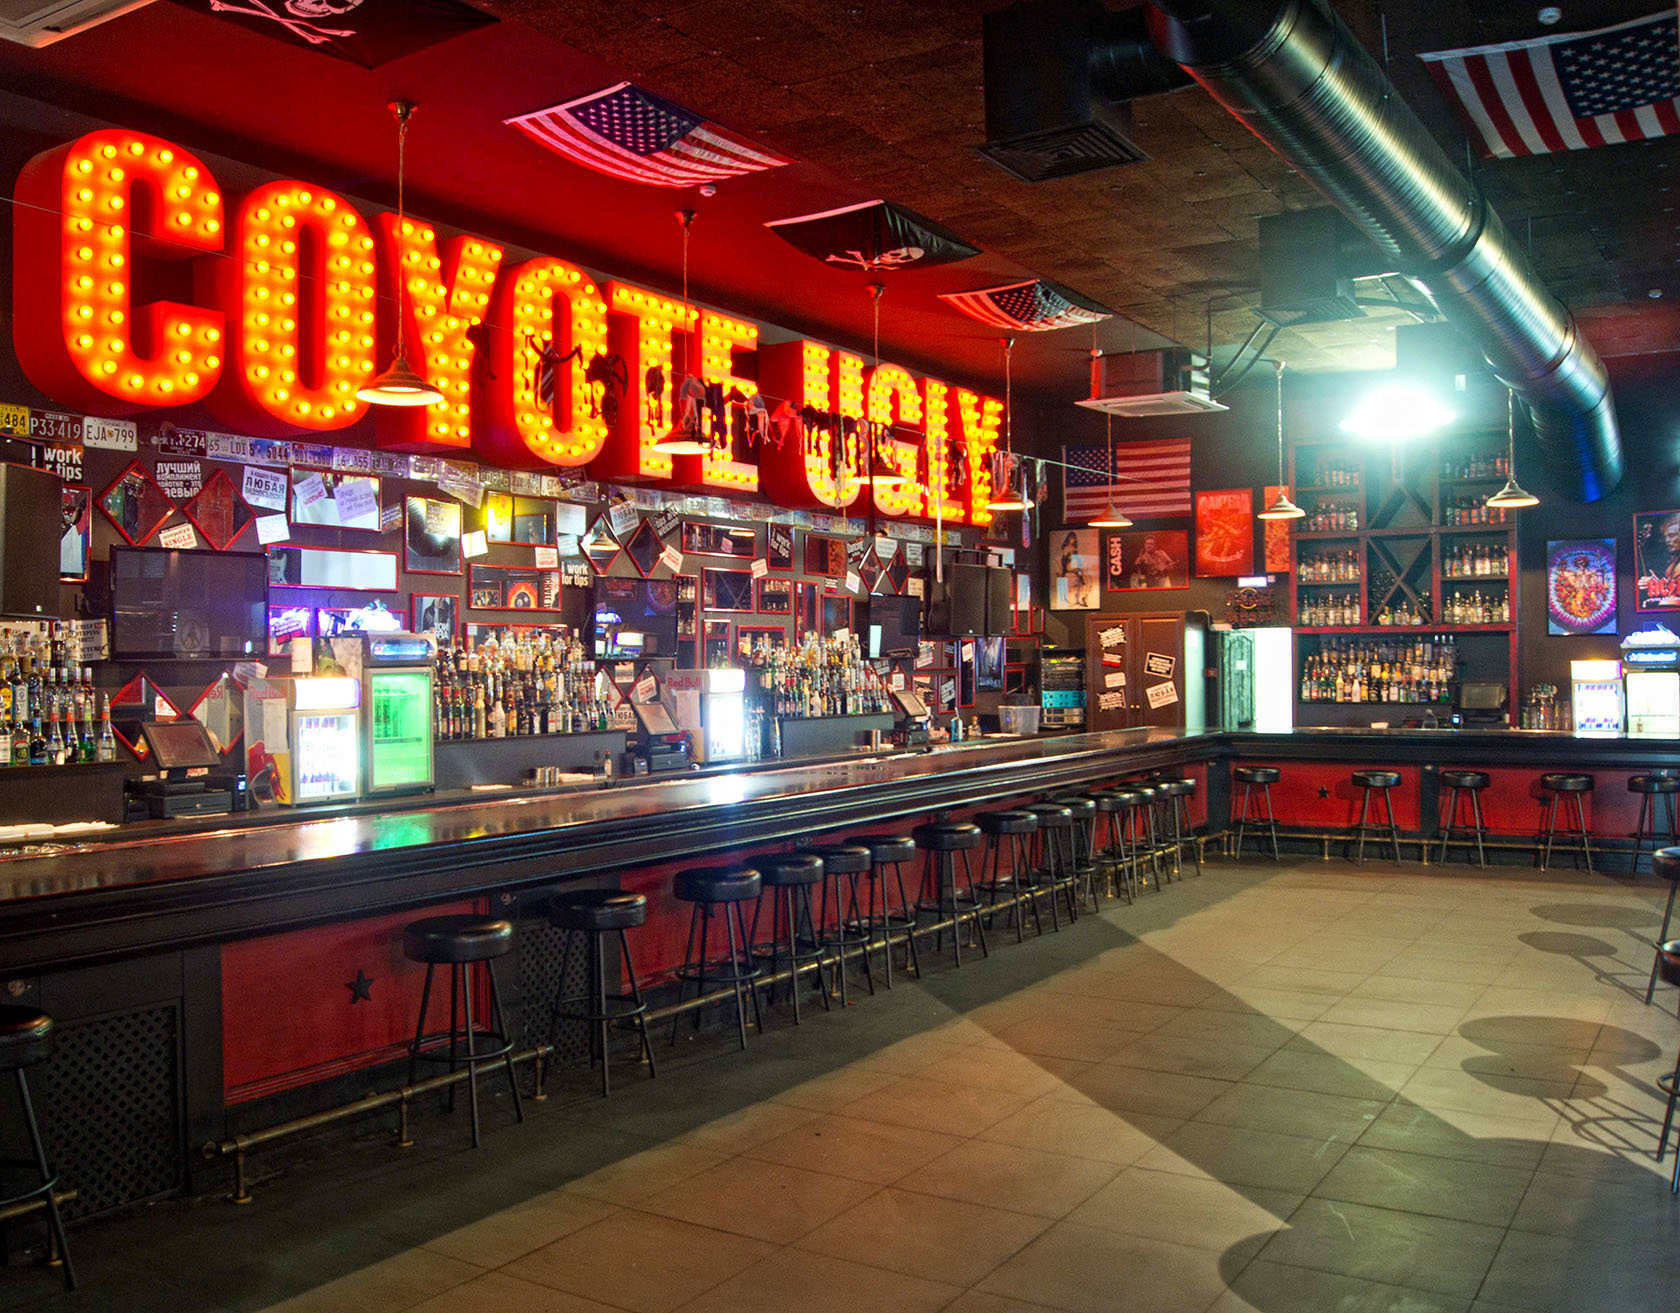 Coyote ugly saloon   the most famous bar on the planet